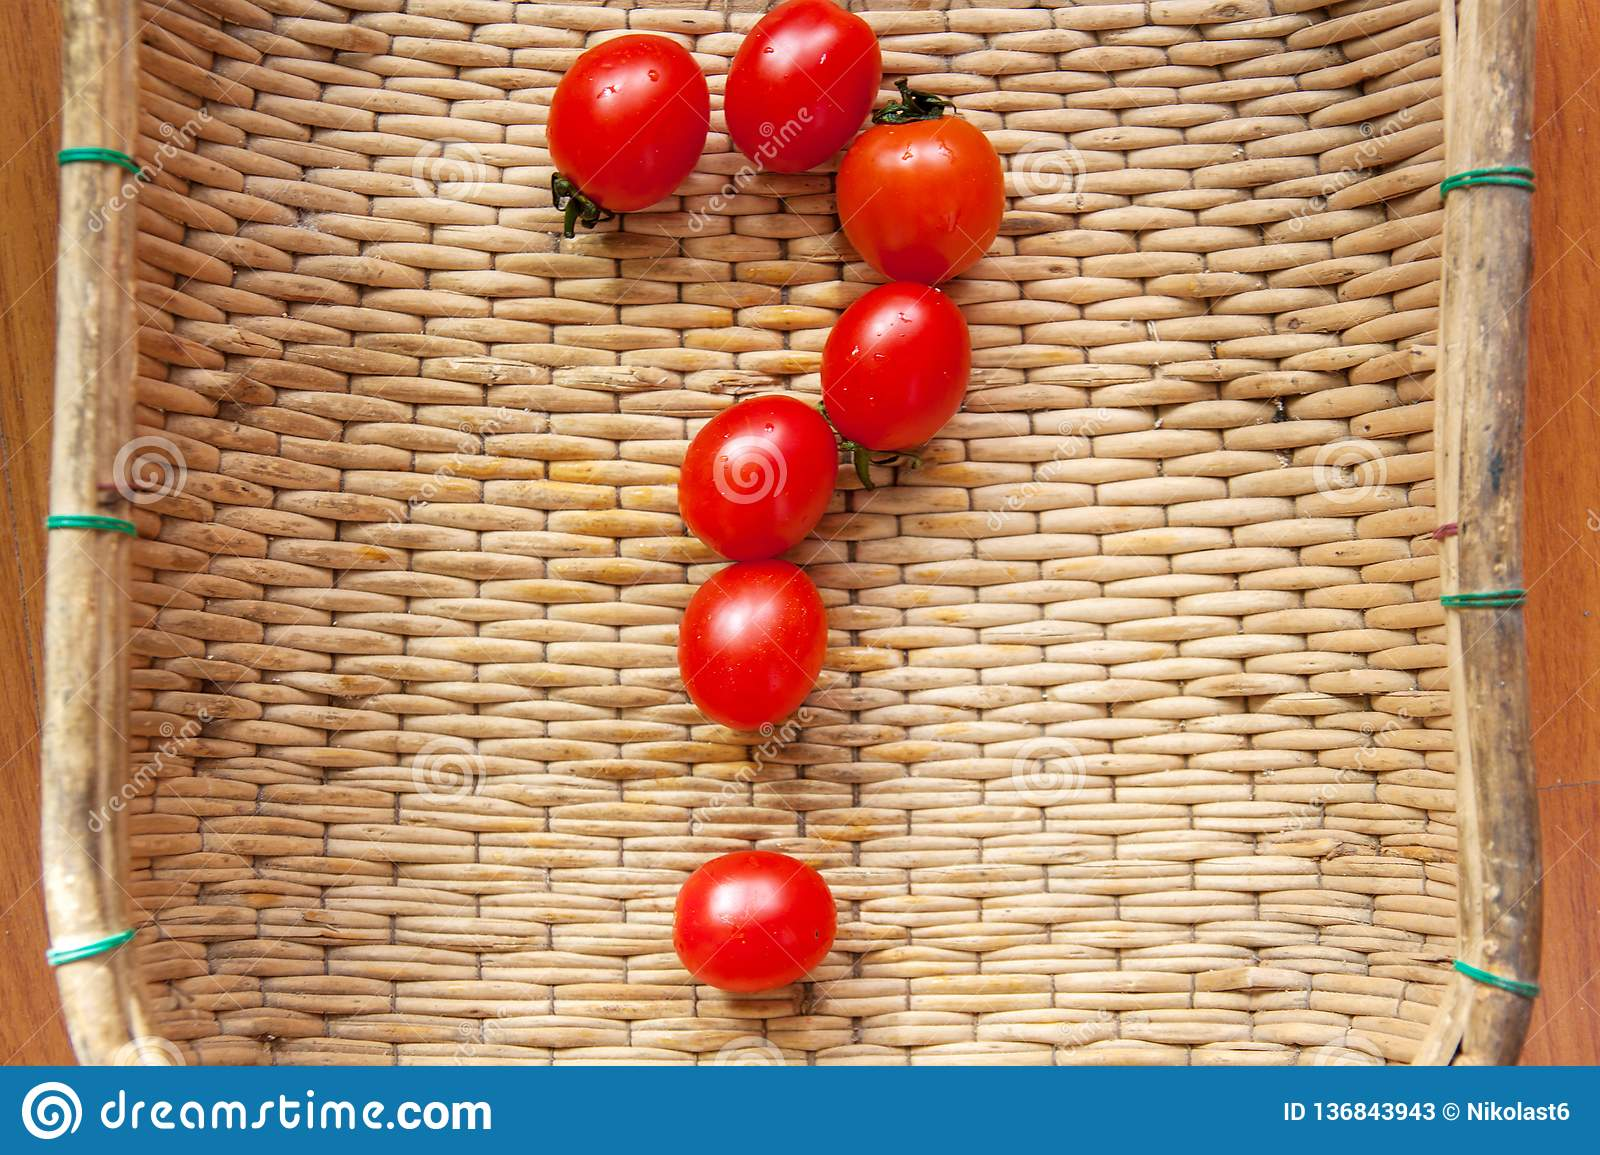 How to grow cherry tomatoes at home? What good is a tomato? How to choose a tomato? Small red cherry tomatoes spill out of a wicke